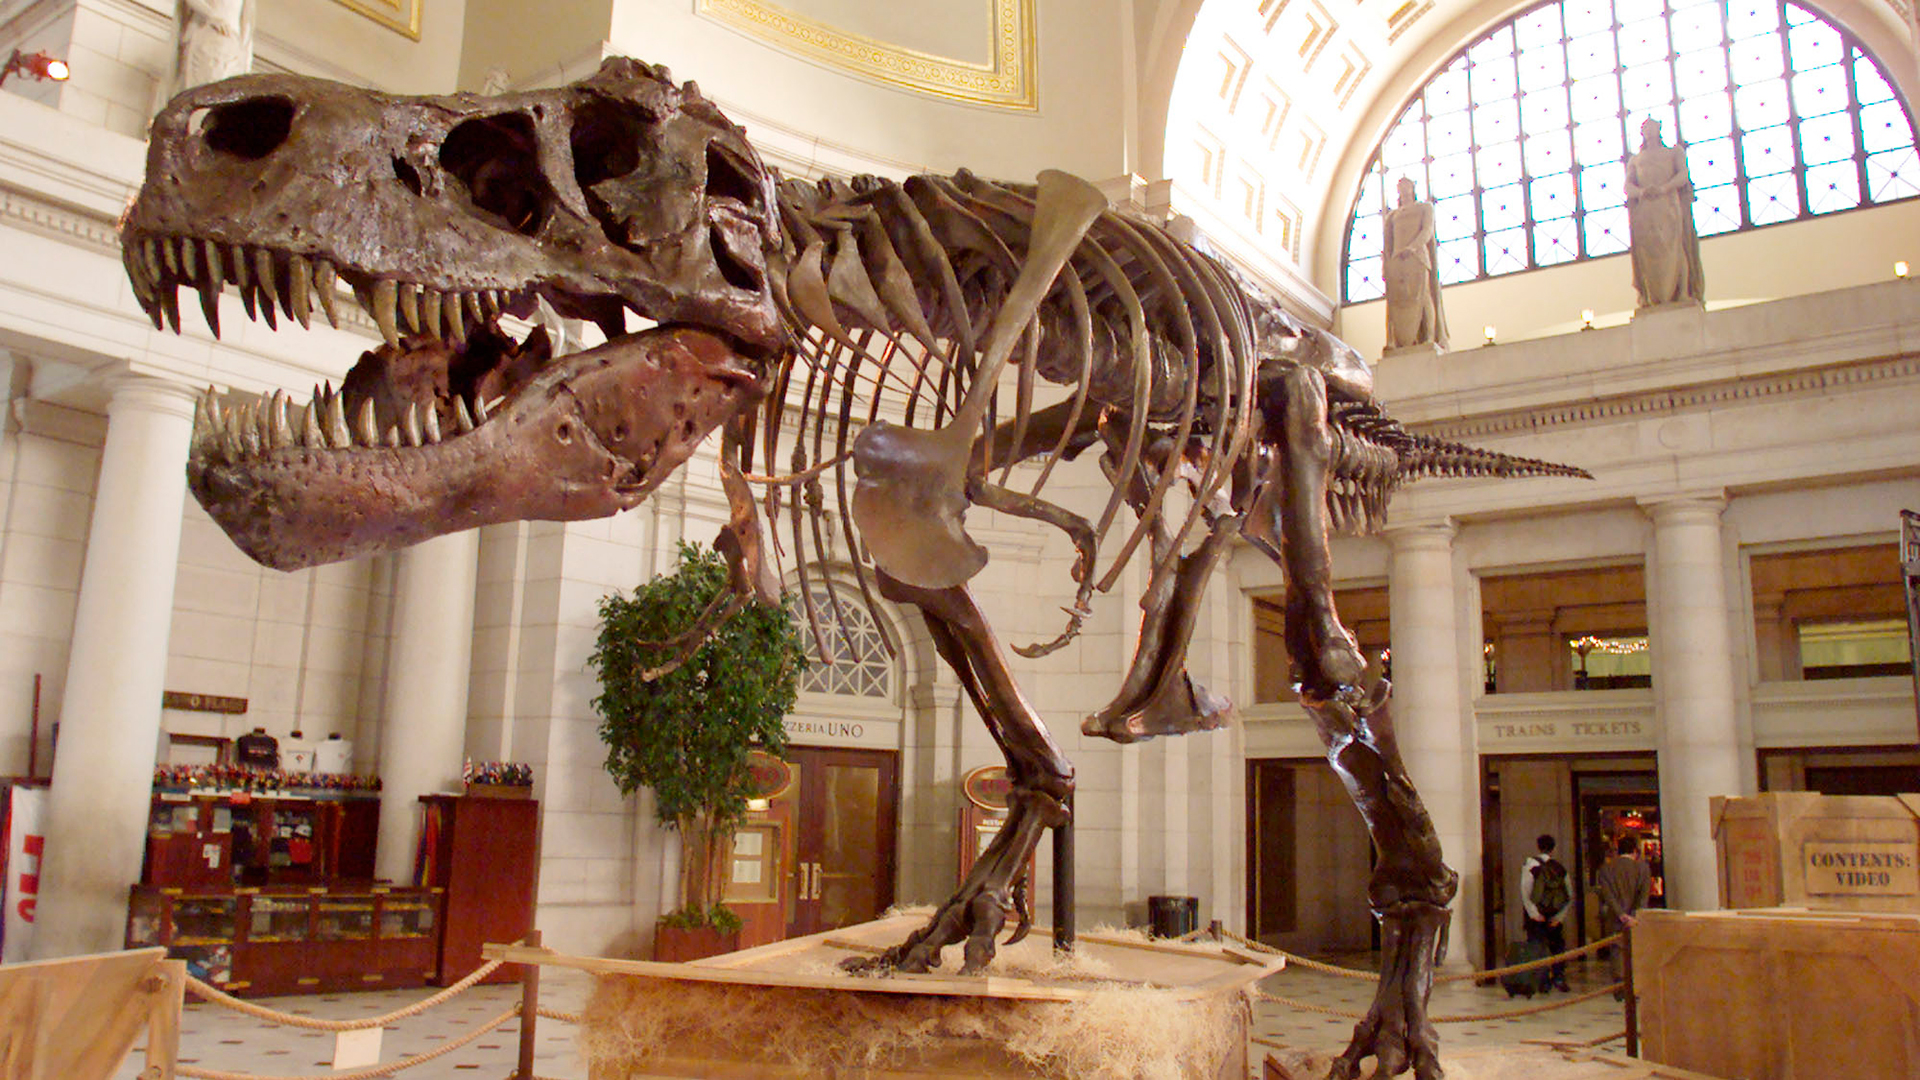 August 12, 1990: Susan Hendrickson Discovered the Largest and Most Complete Tyrannosaurus Rex Skeleton